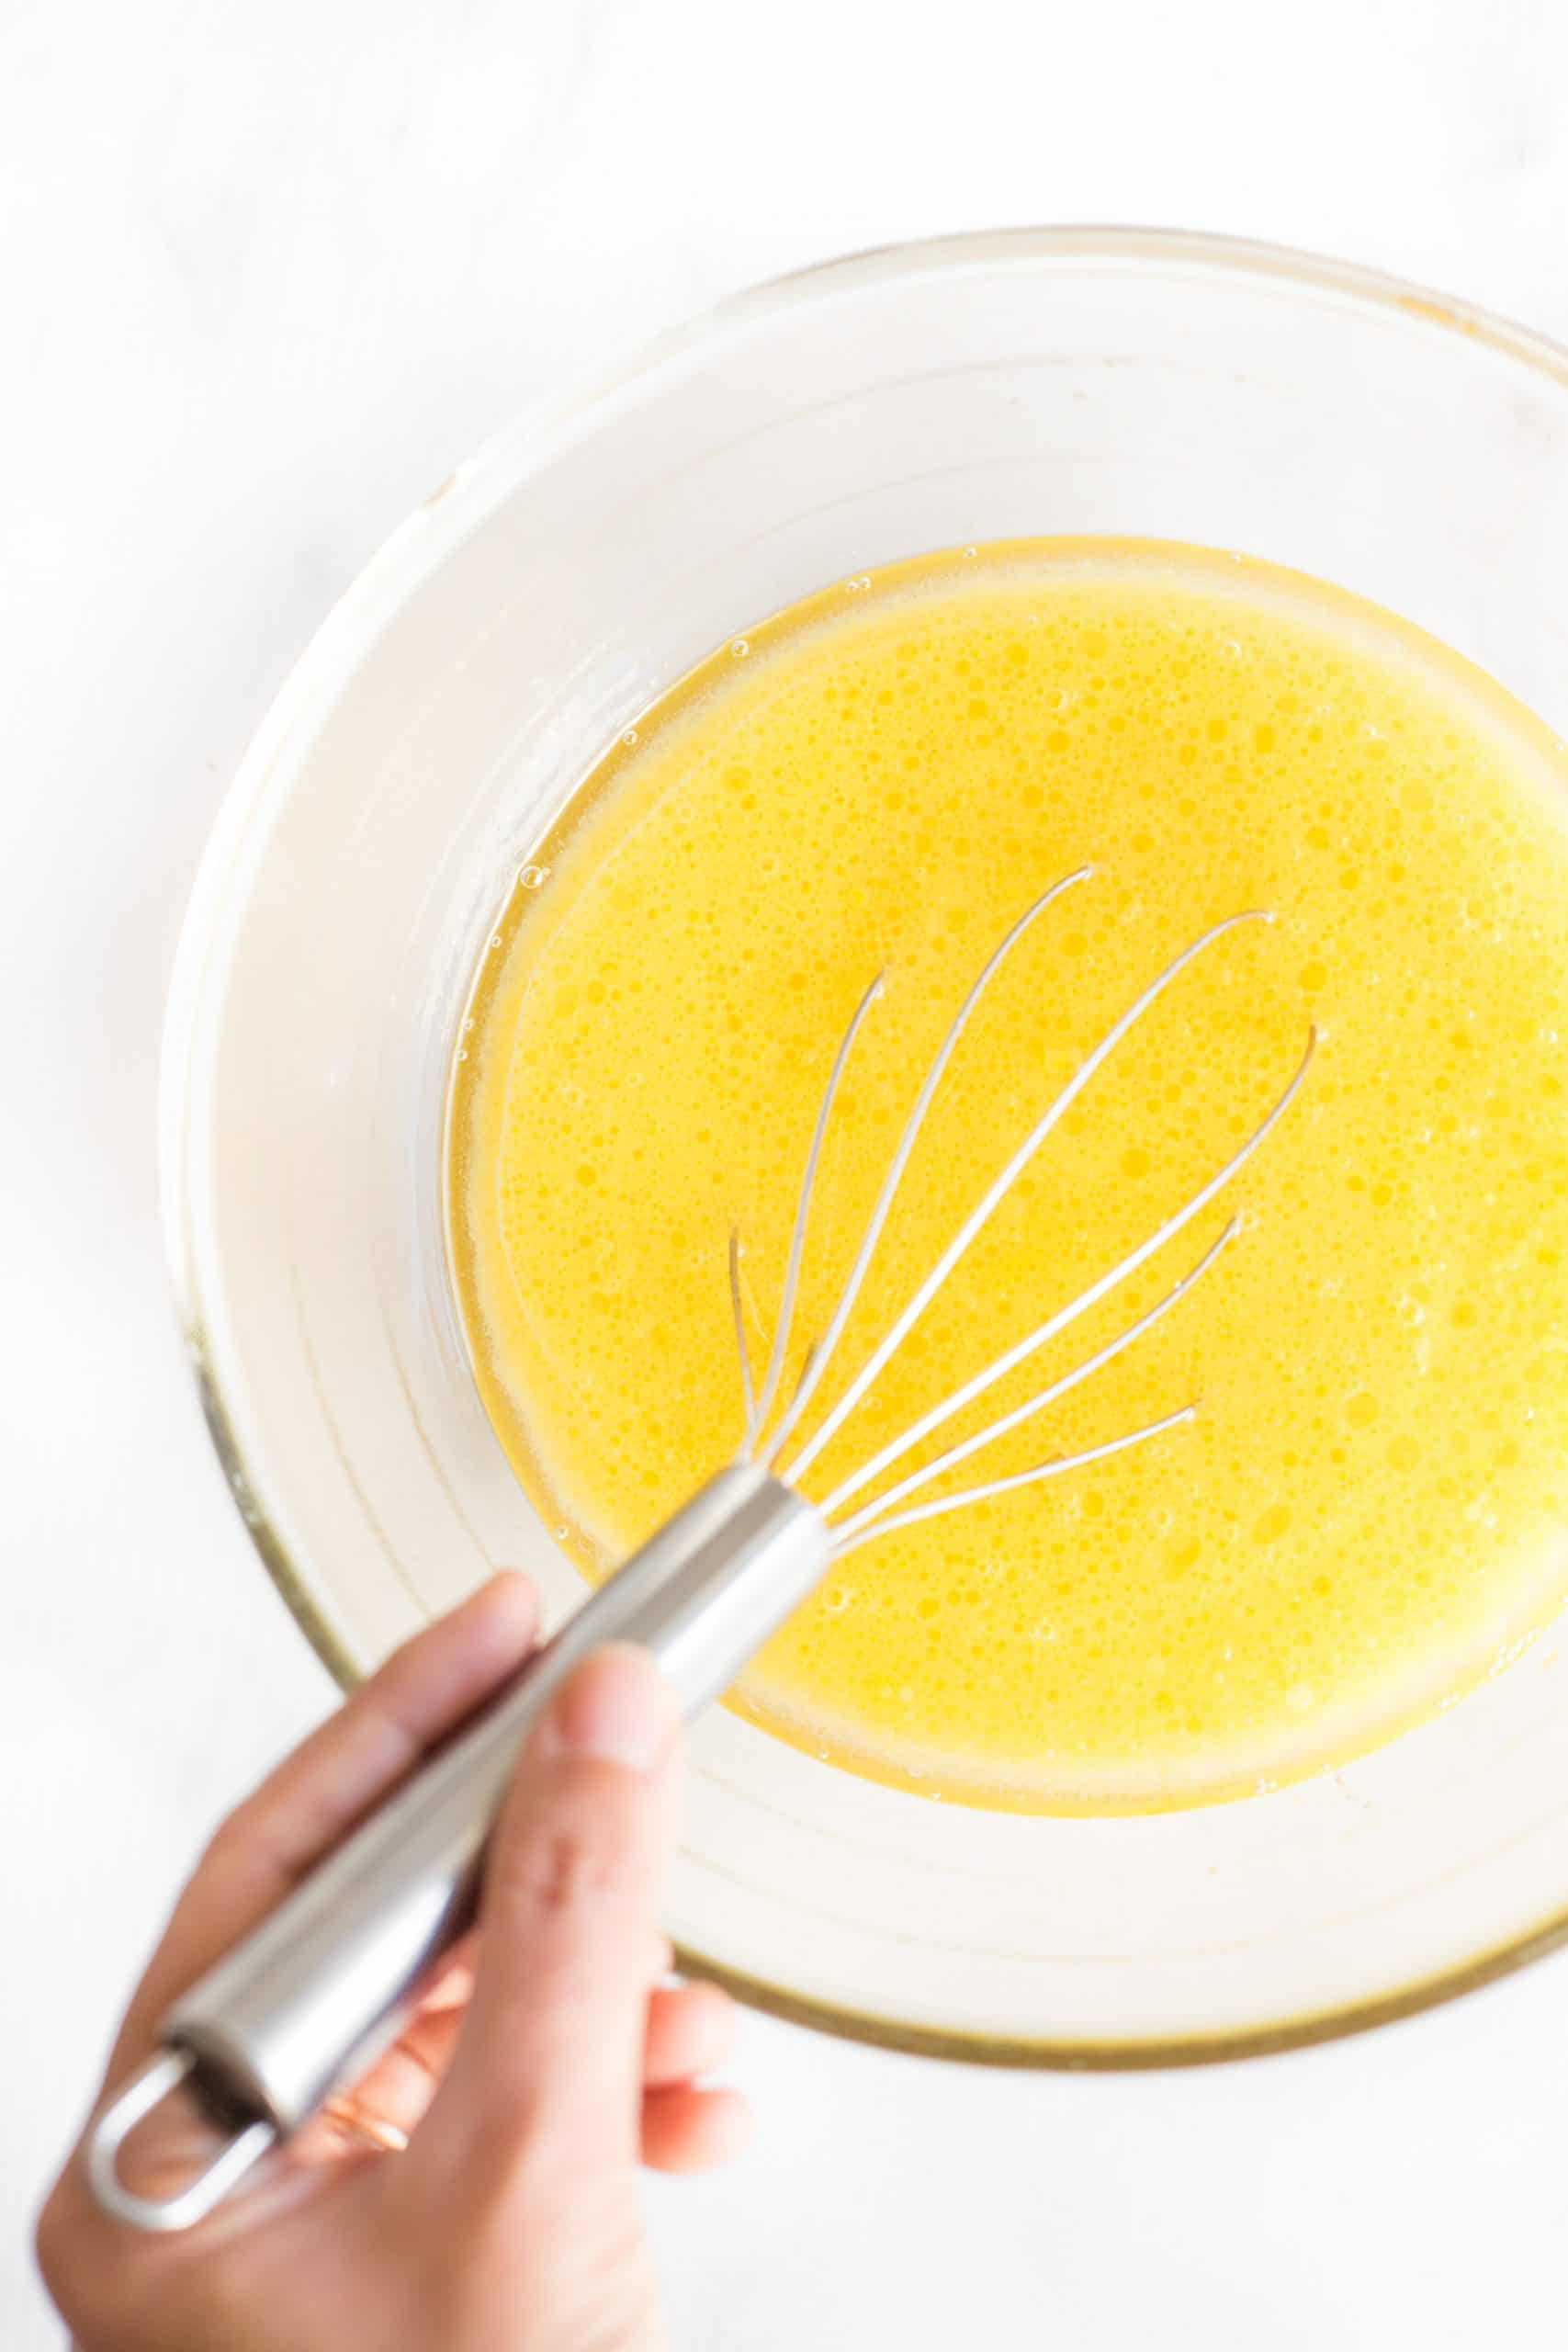 Whisking yellow mixture in a glass mixing bowl.